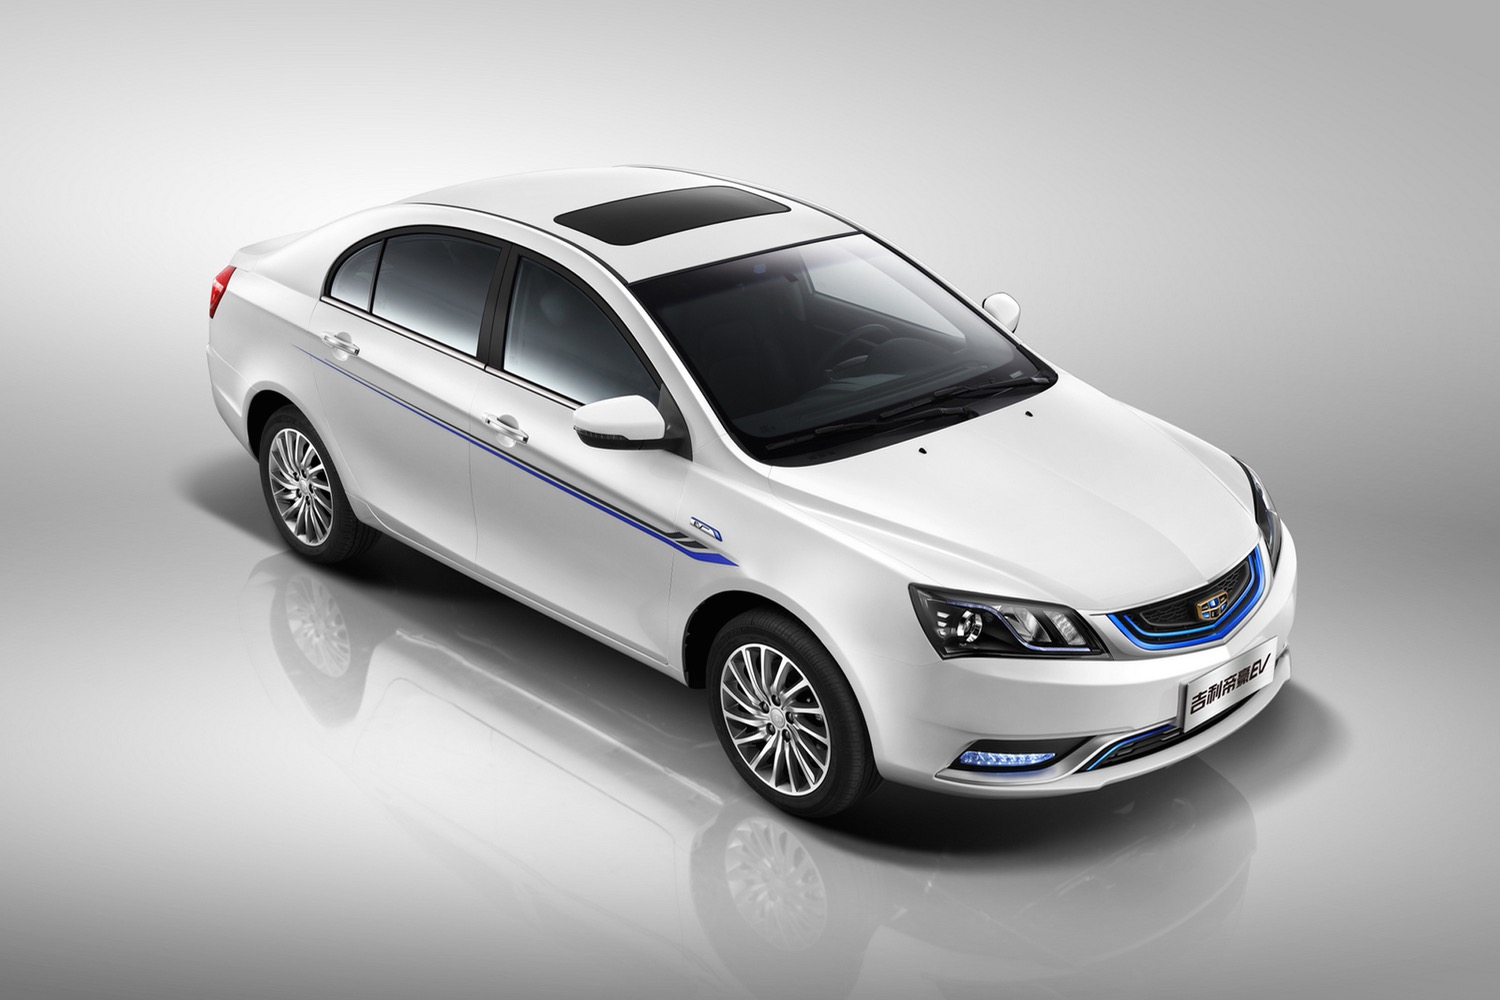 Geely Emgrand EV, Chinese Electric Car, Driven By British